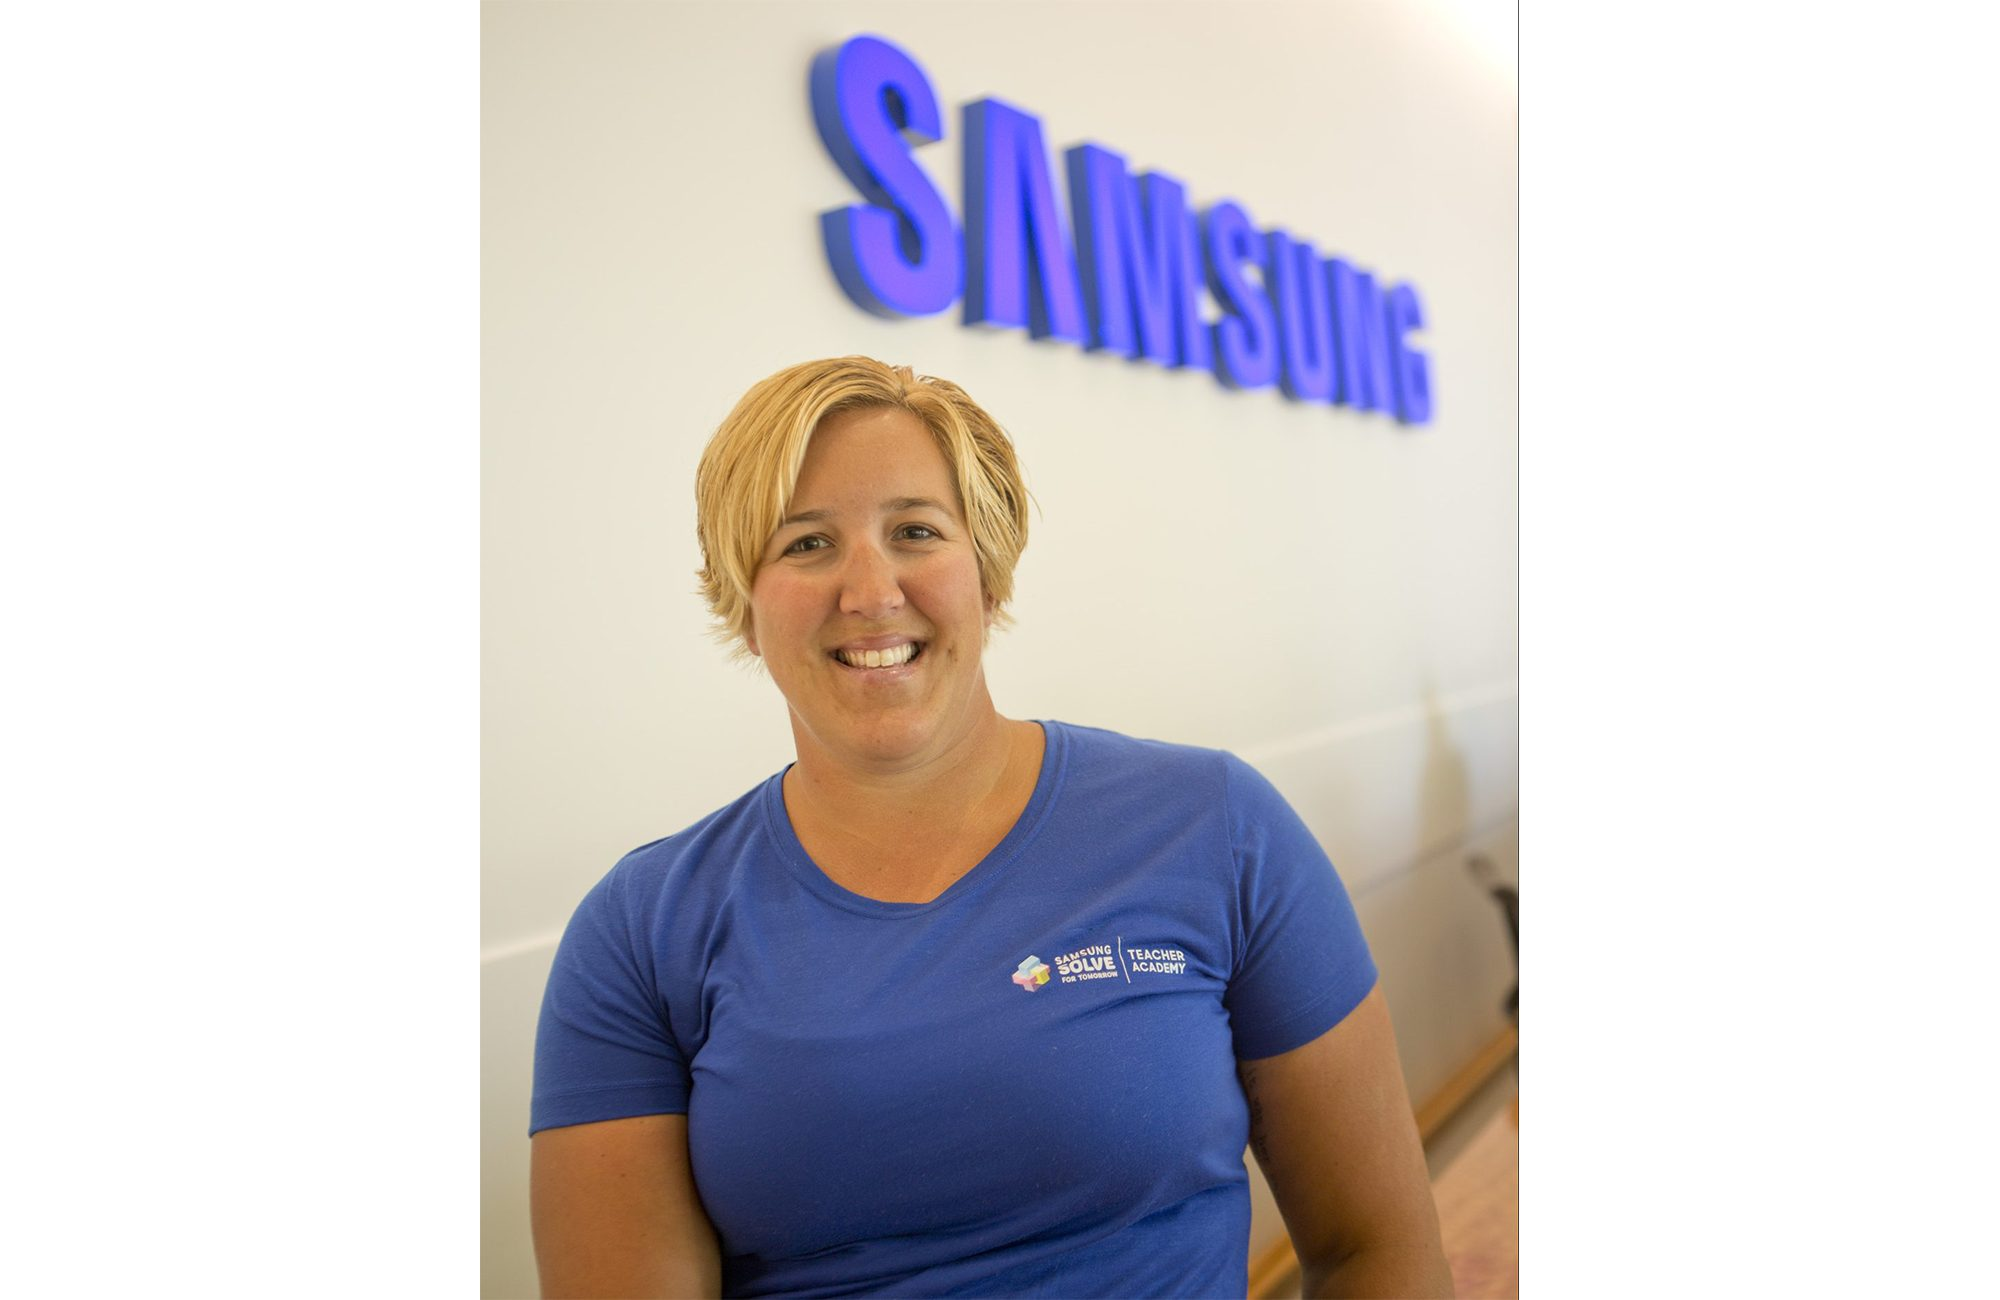 Last summer, Miss B, as she's lovingly referred to by her students, attended Samsung Solve for Tomorrow Teacher Academy, a weeklong professional development practicum, as part of her effort to build and sustain a culture of STEM teaching and learning.